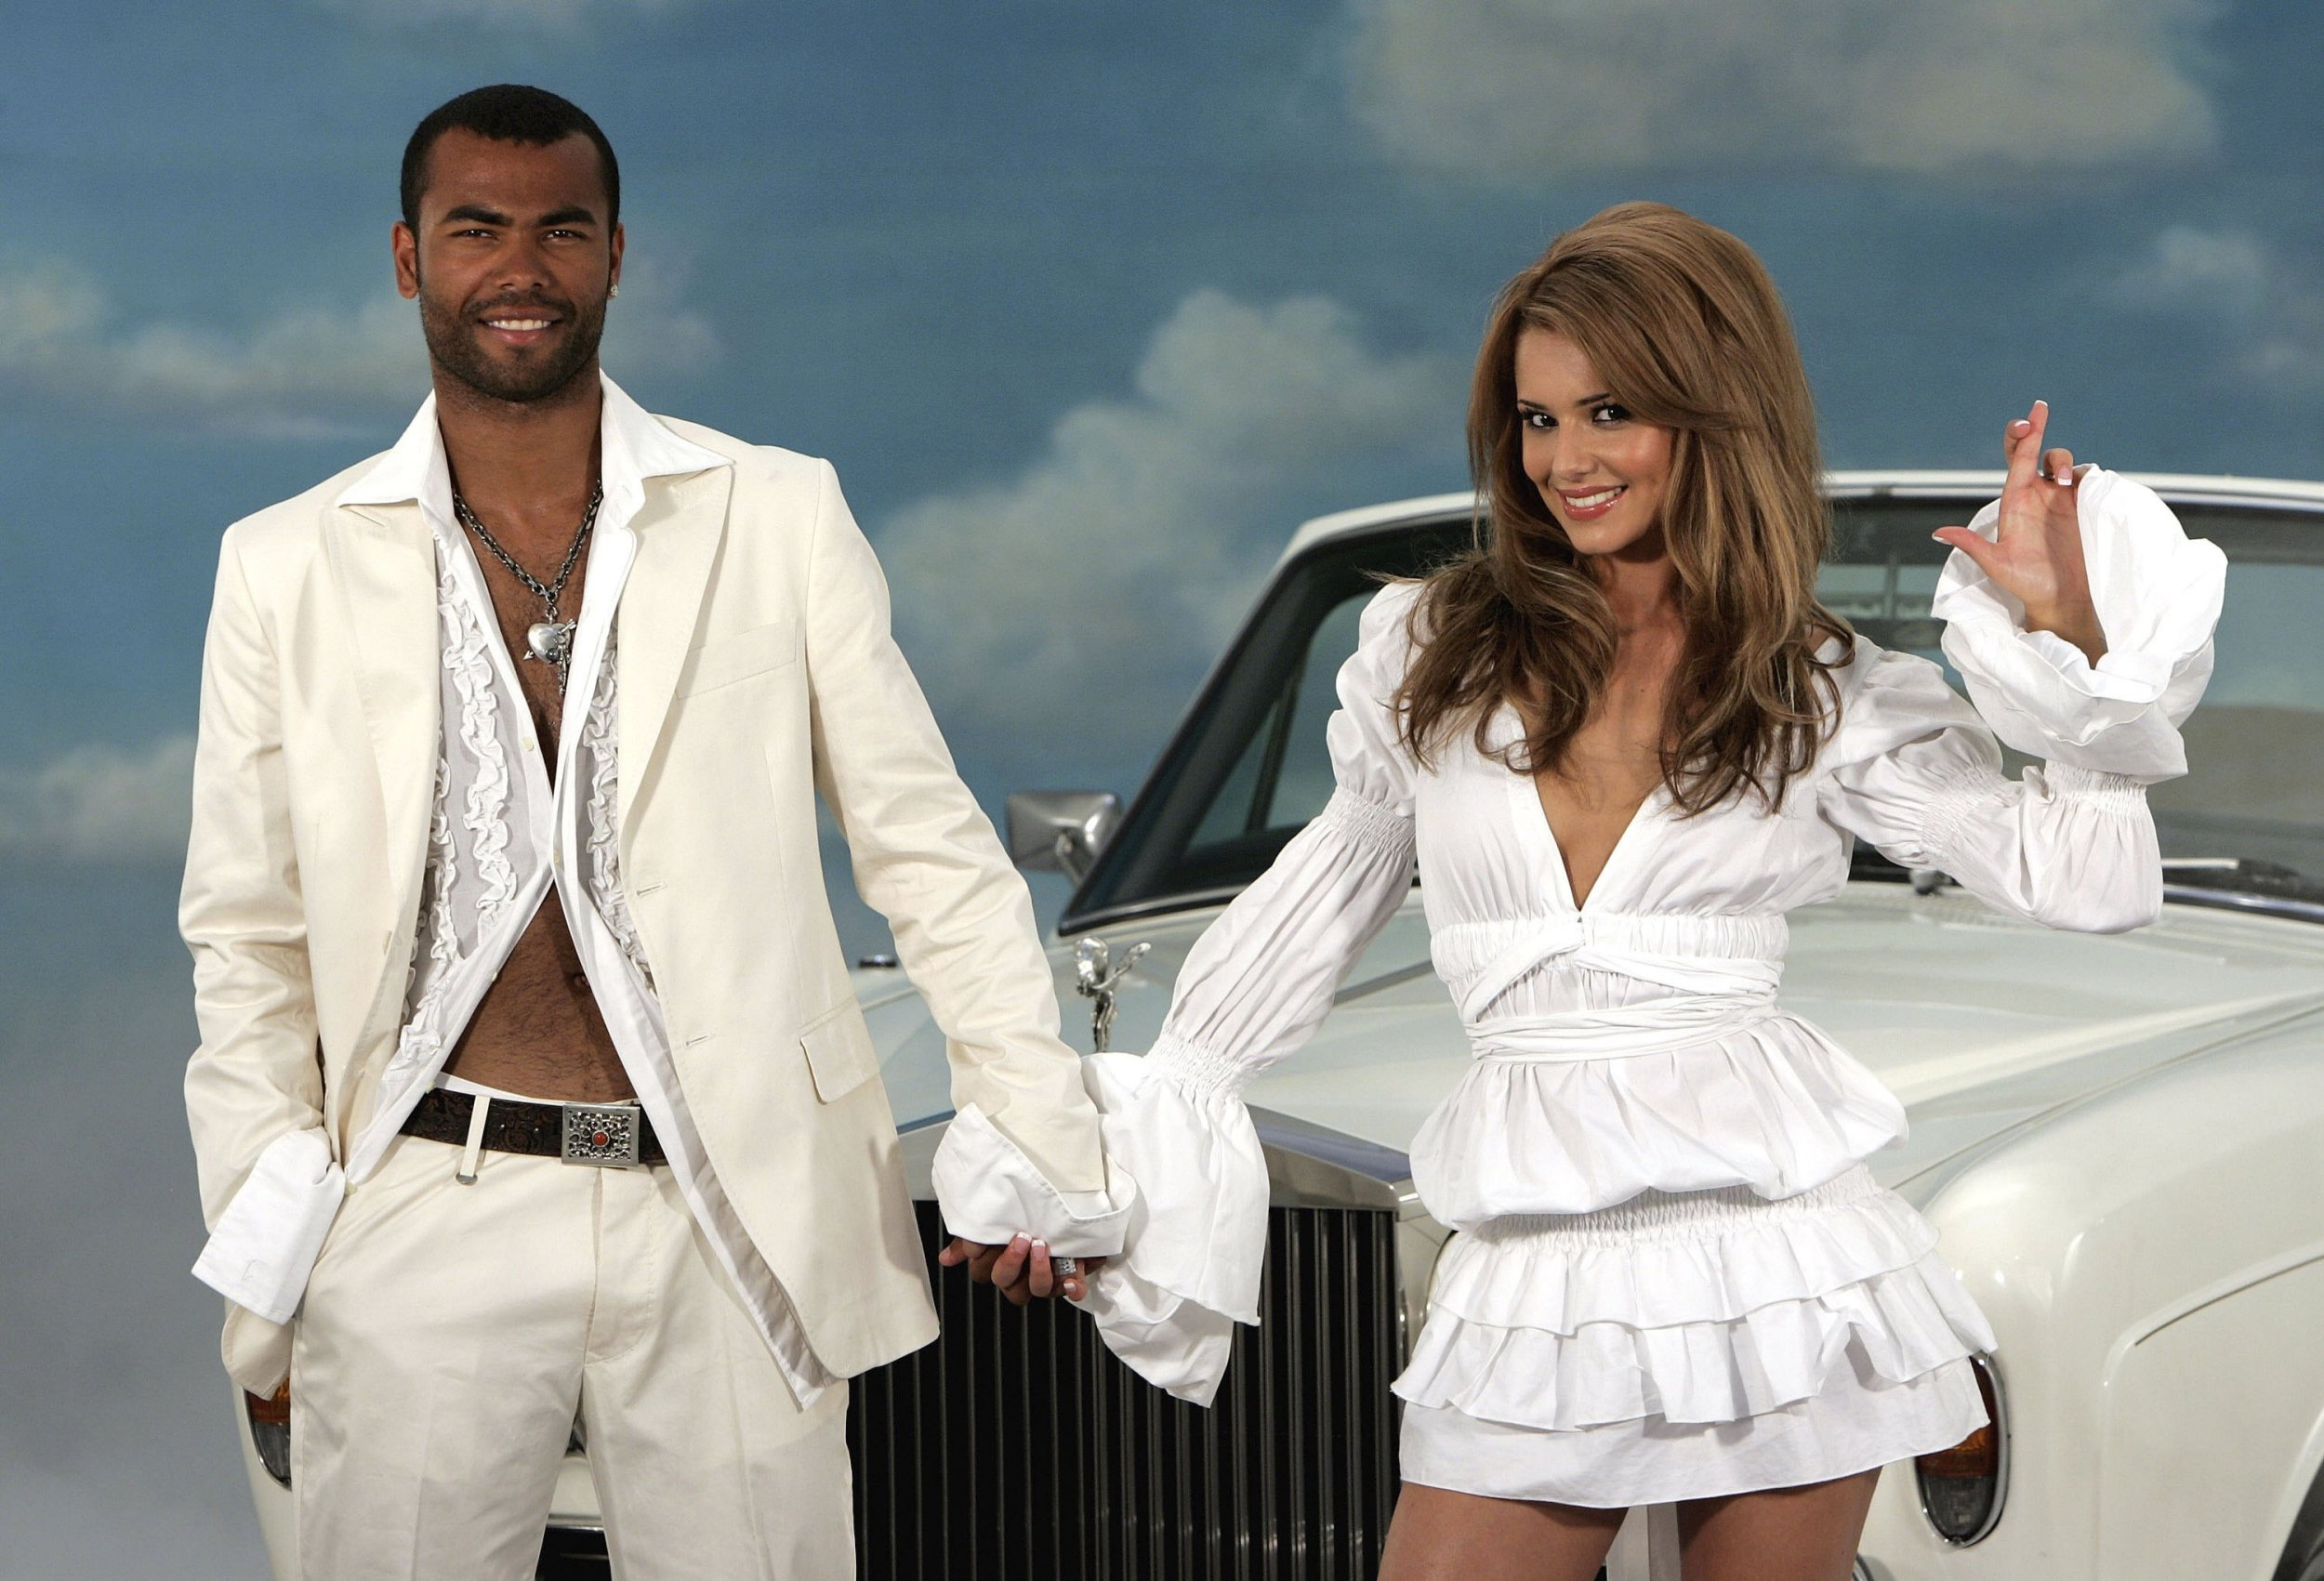 Ashley Cole had a girlfriend when he started dating Cheryl, claims Jermaine Pennant